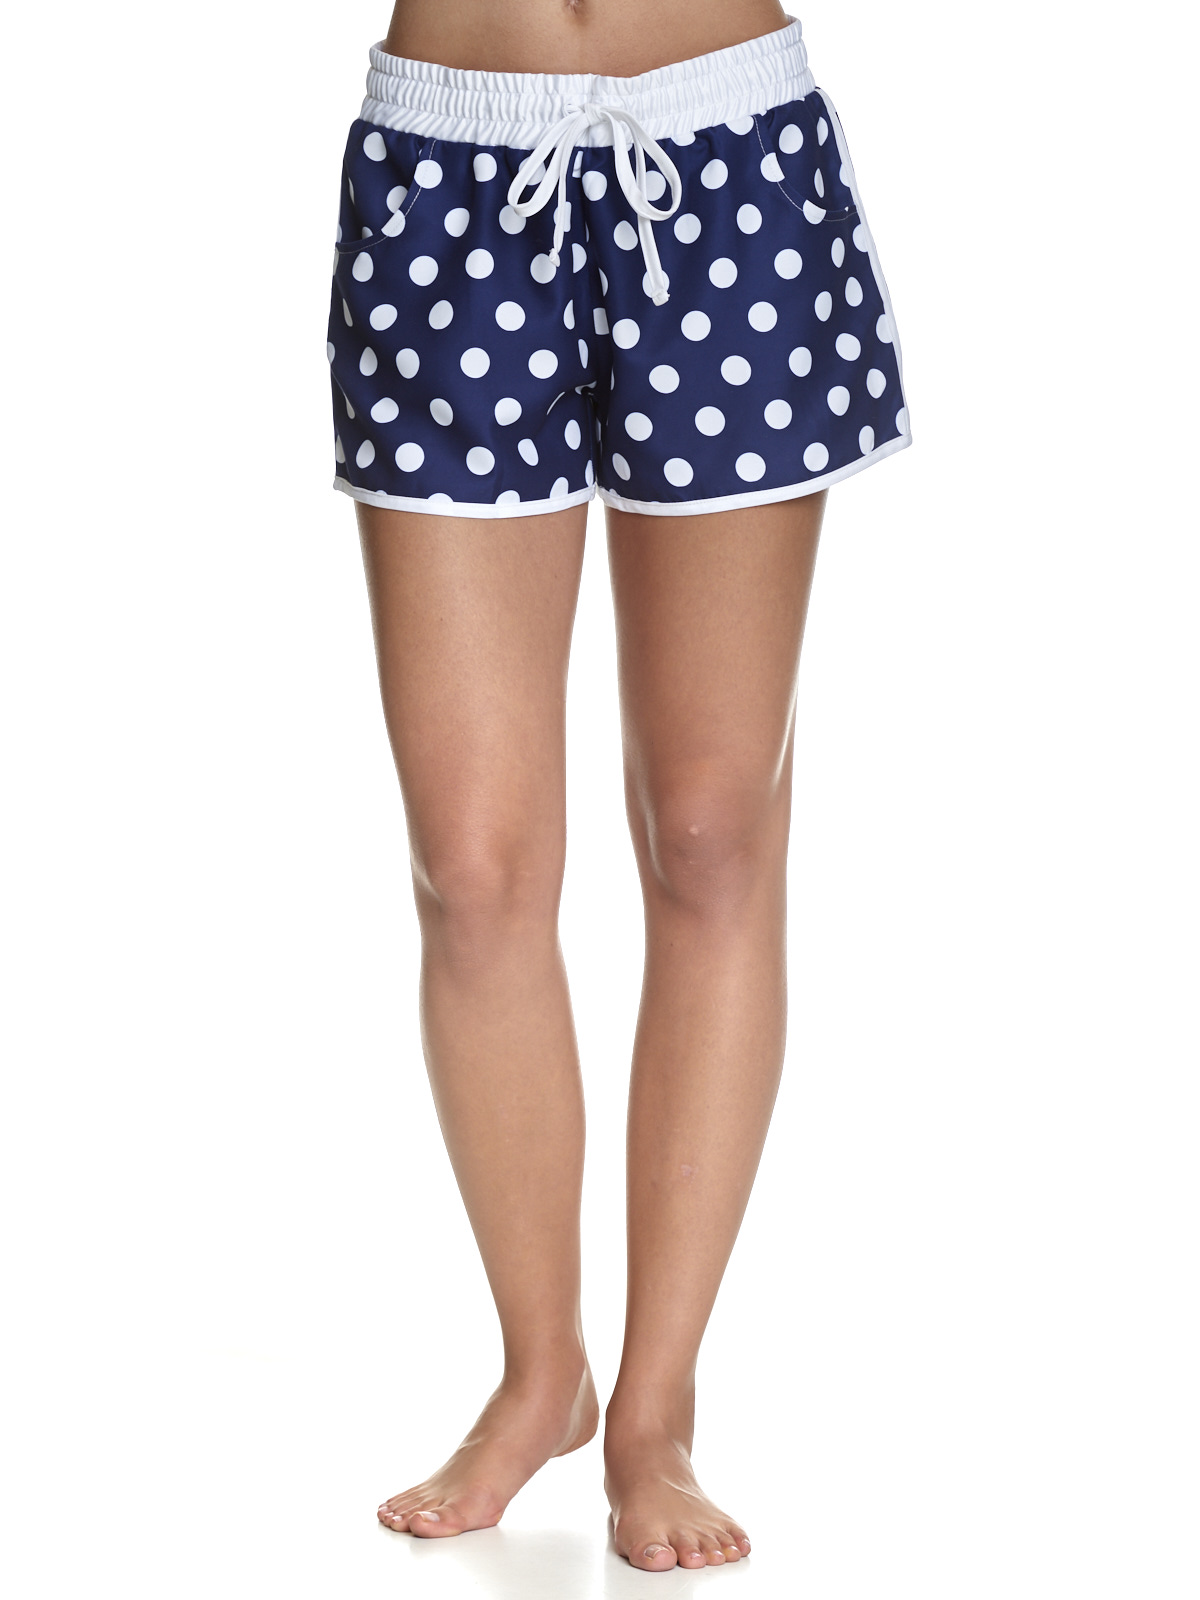 Bademode - Pussy Deluxe Big Dots Girl Boardshorts navy allover – Größe XS  - Onlineshop NAPO Shop